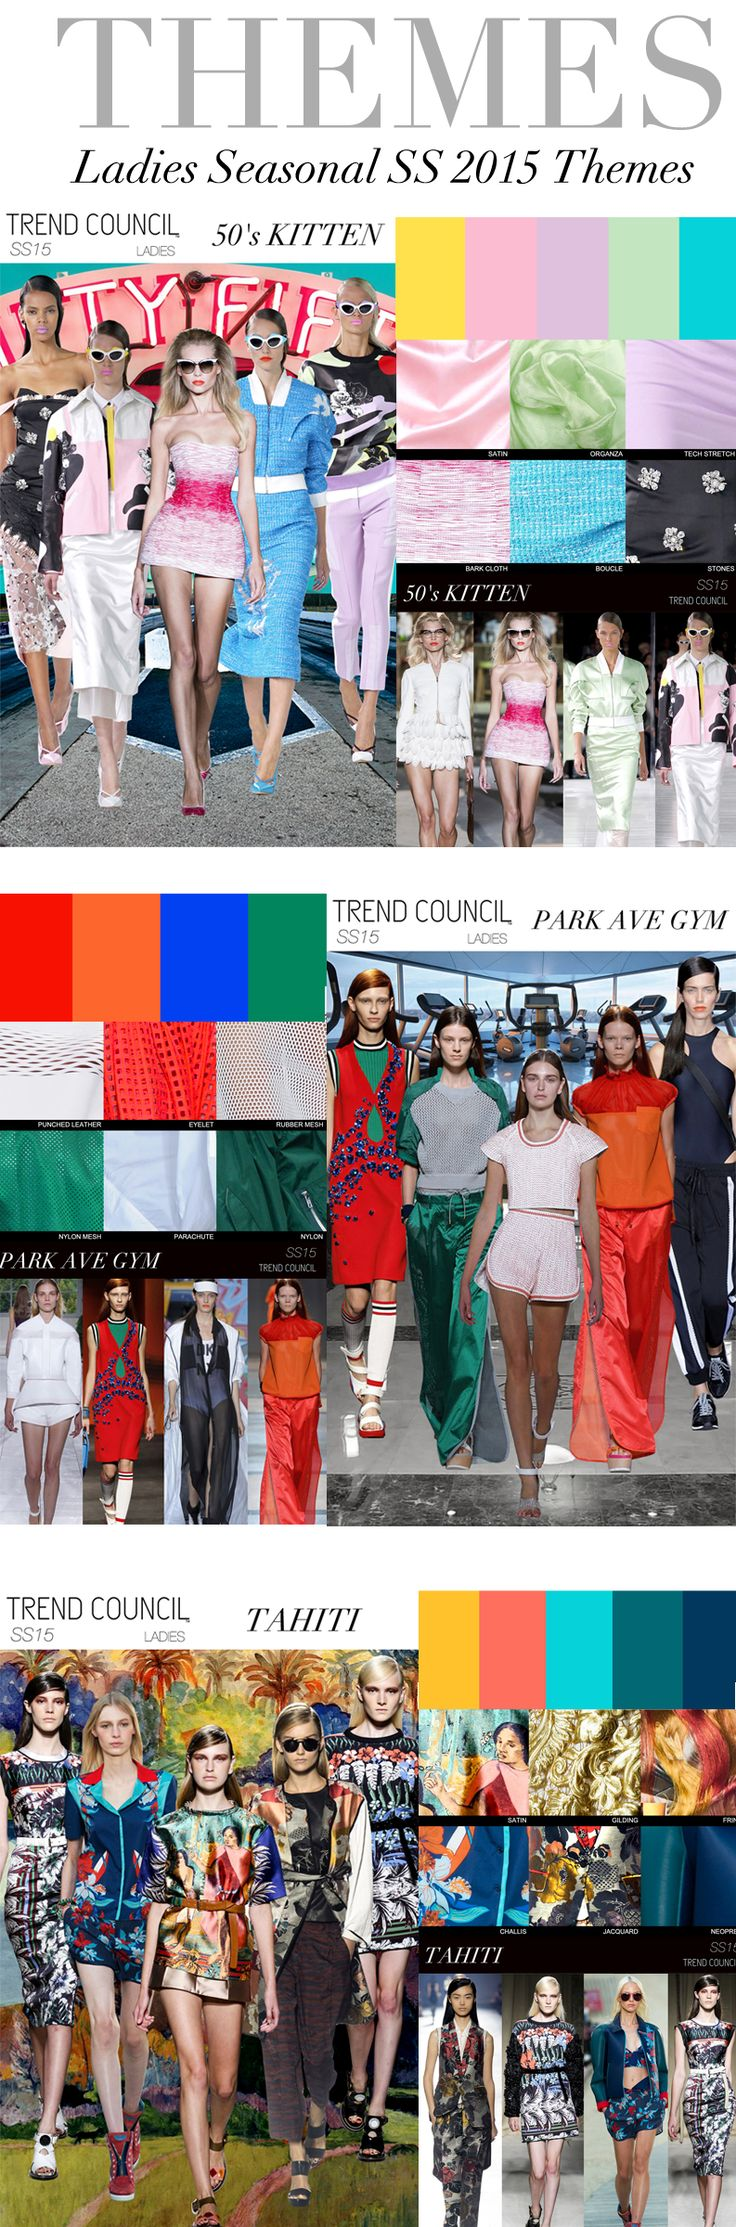 TREND COUNCIL SPRING/SUMMER 2015